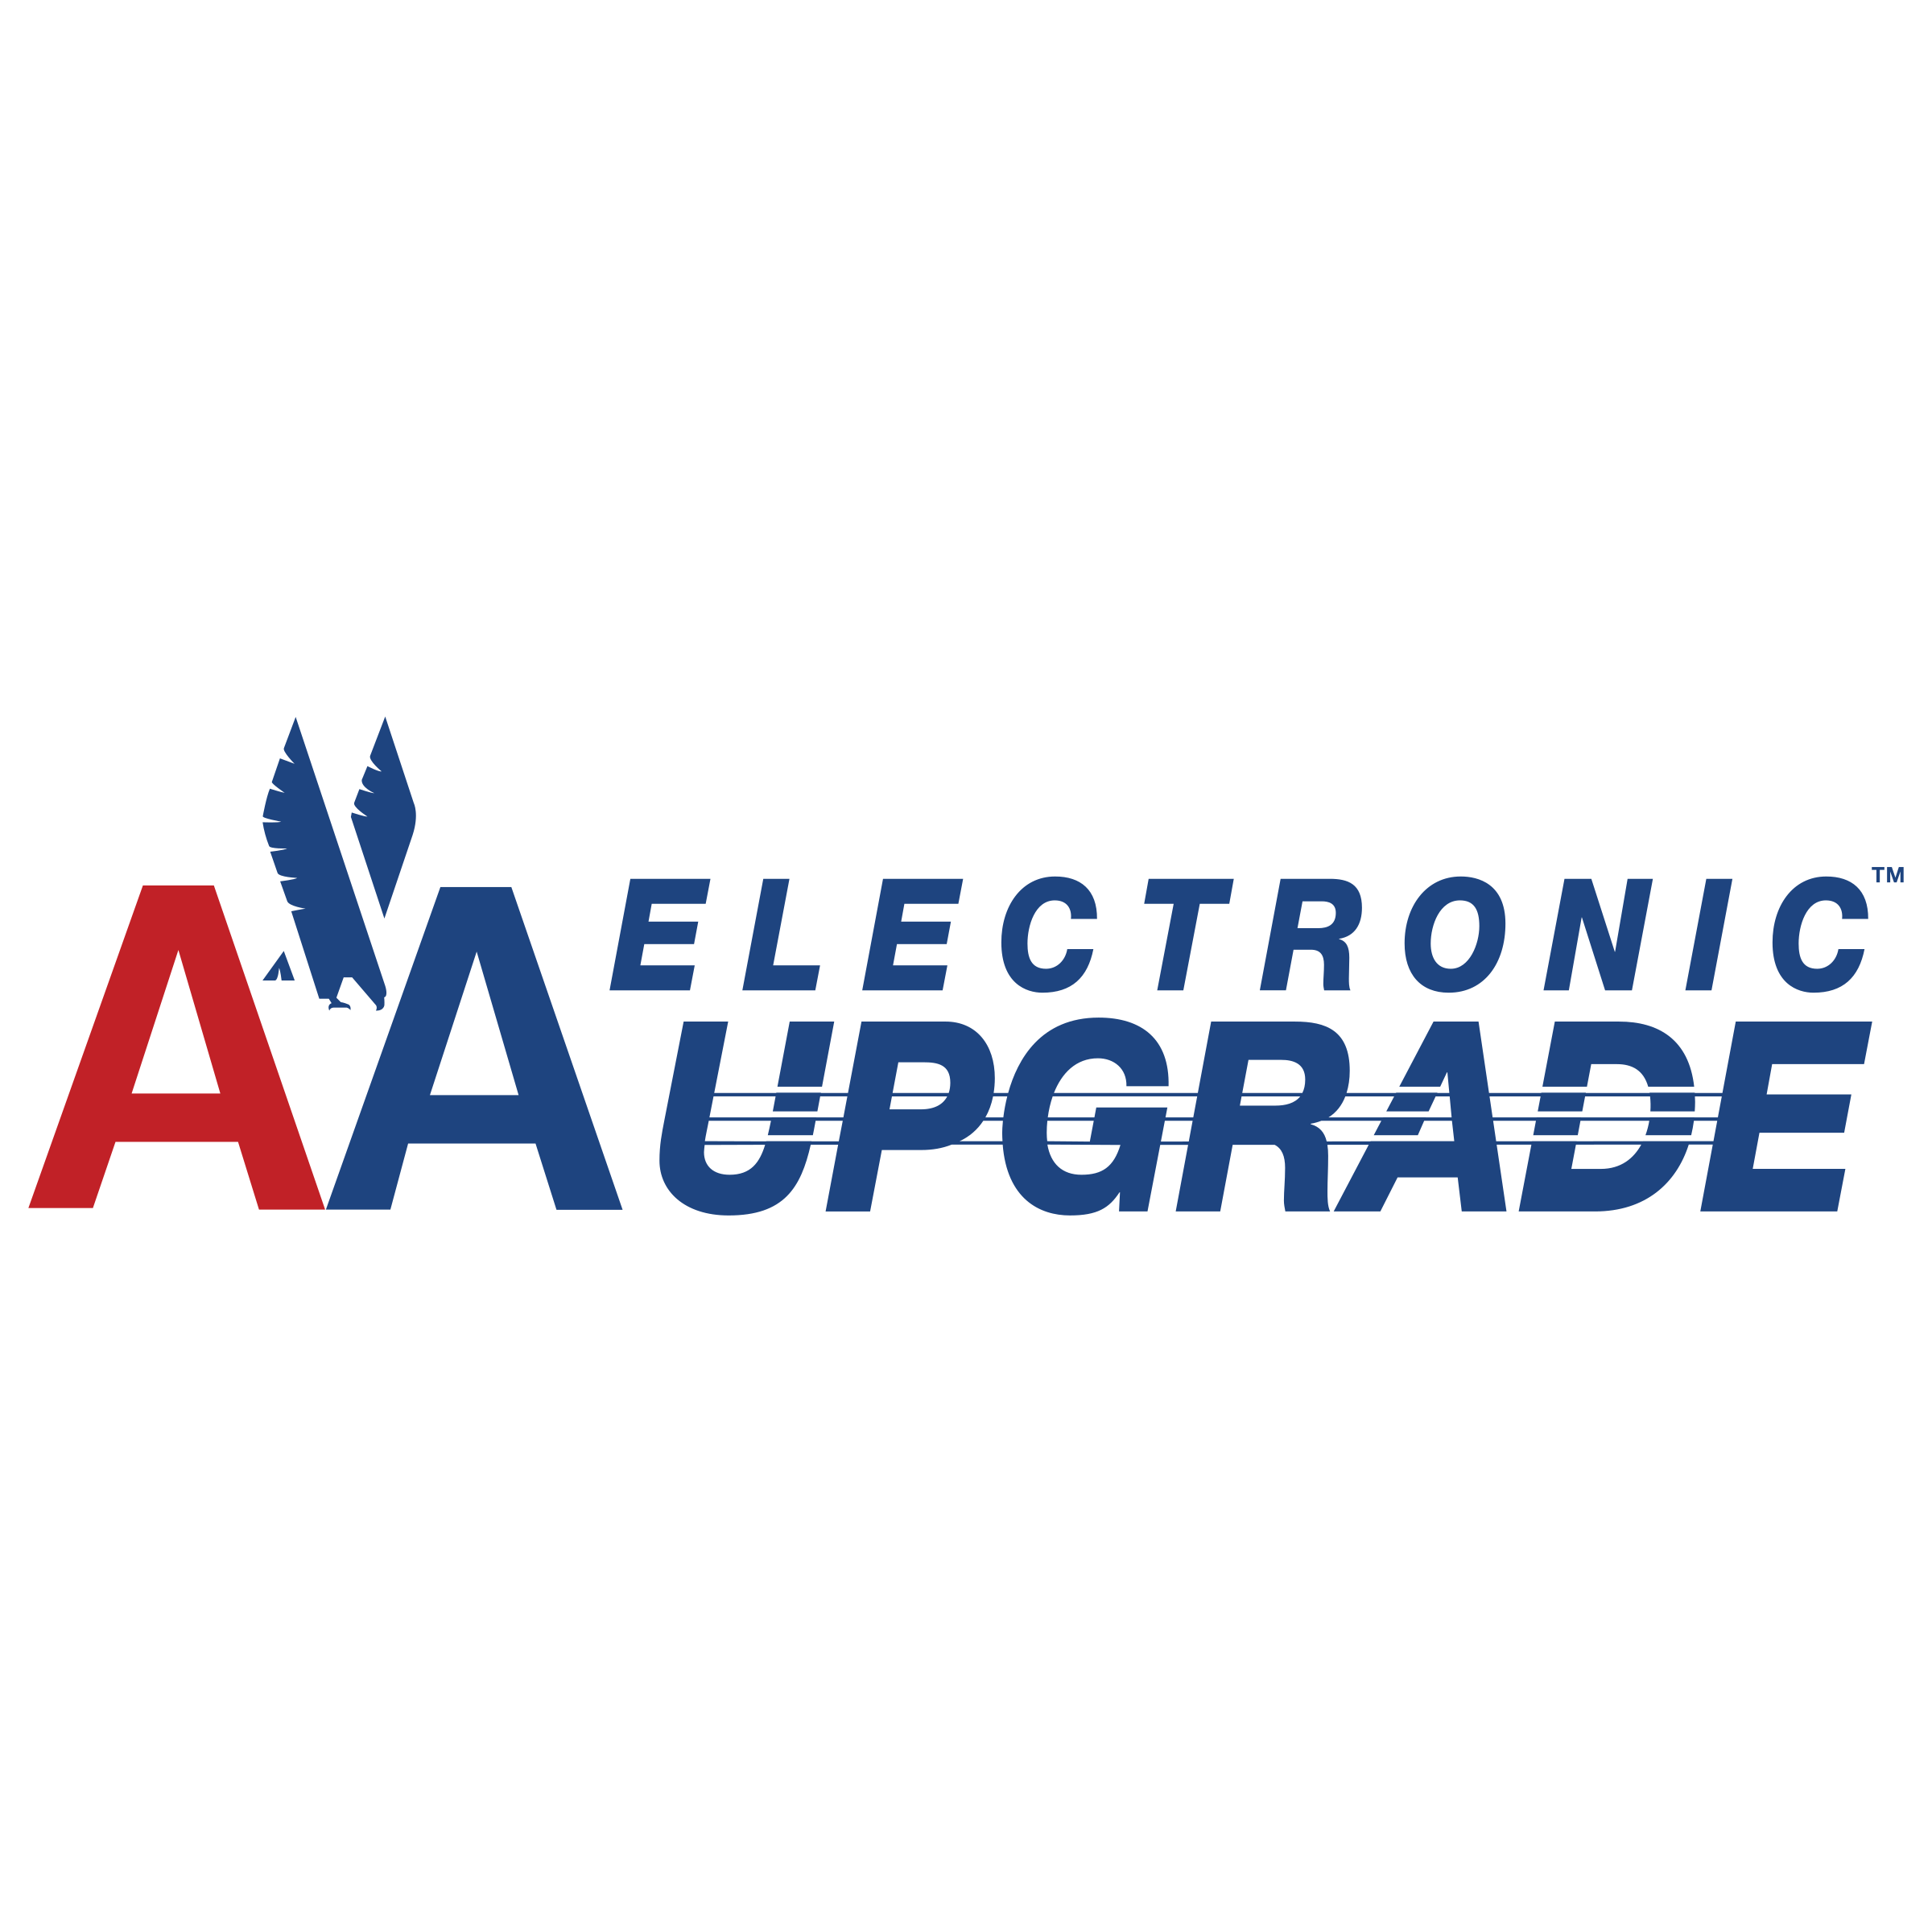 aa electronic upgrade logo png transparent svg vector freebie supply rh freebiesupply com electronic logistics electronic logos and names